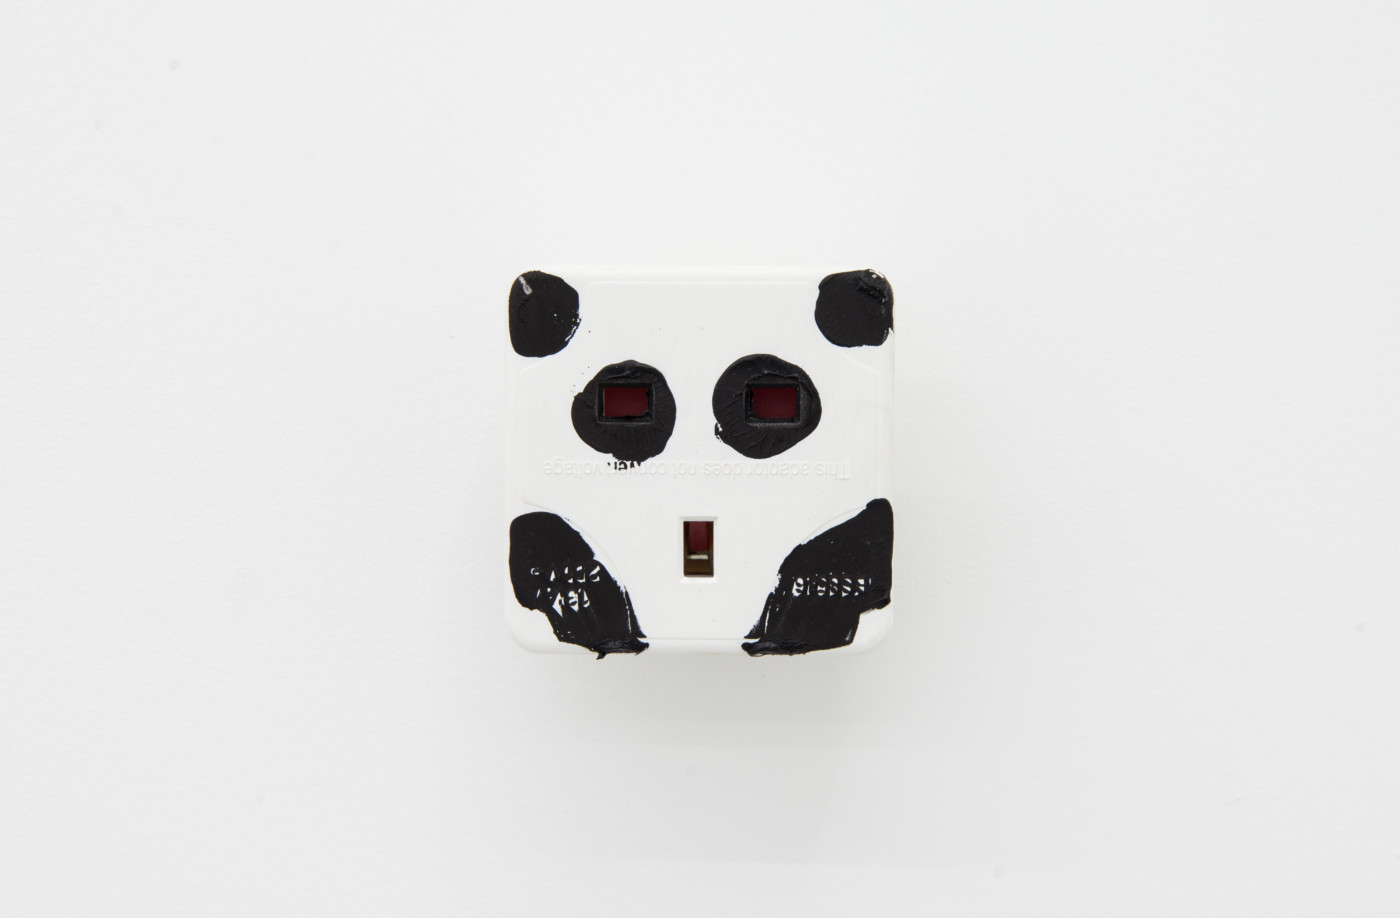 KEITH FARQUHAR  Scream #3</I>, 2019 Oil on travel adaptor 6 x 6 x 4,6 cm / 2.3 x 2.3 x 1.8 in